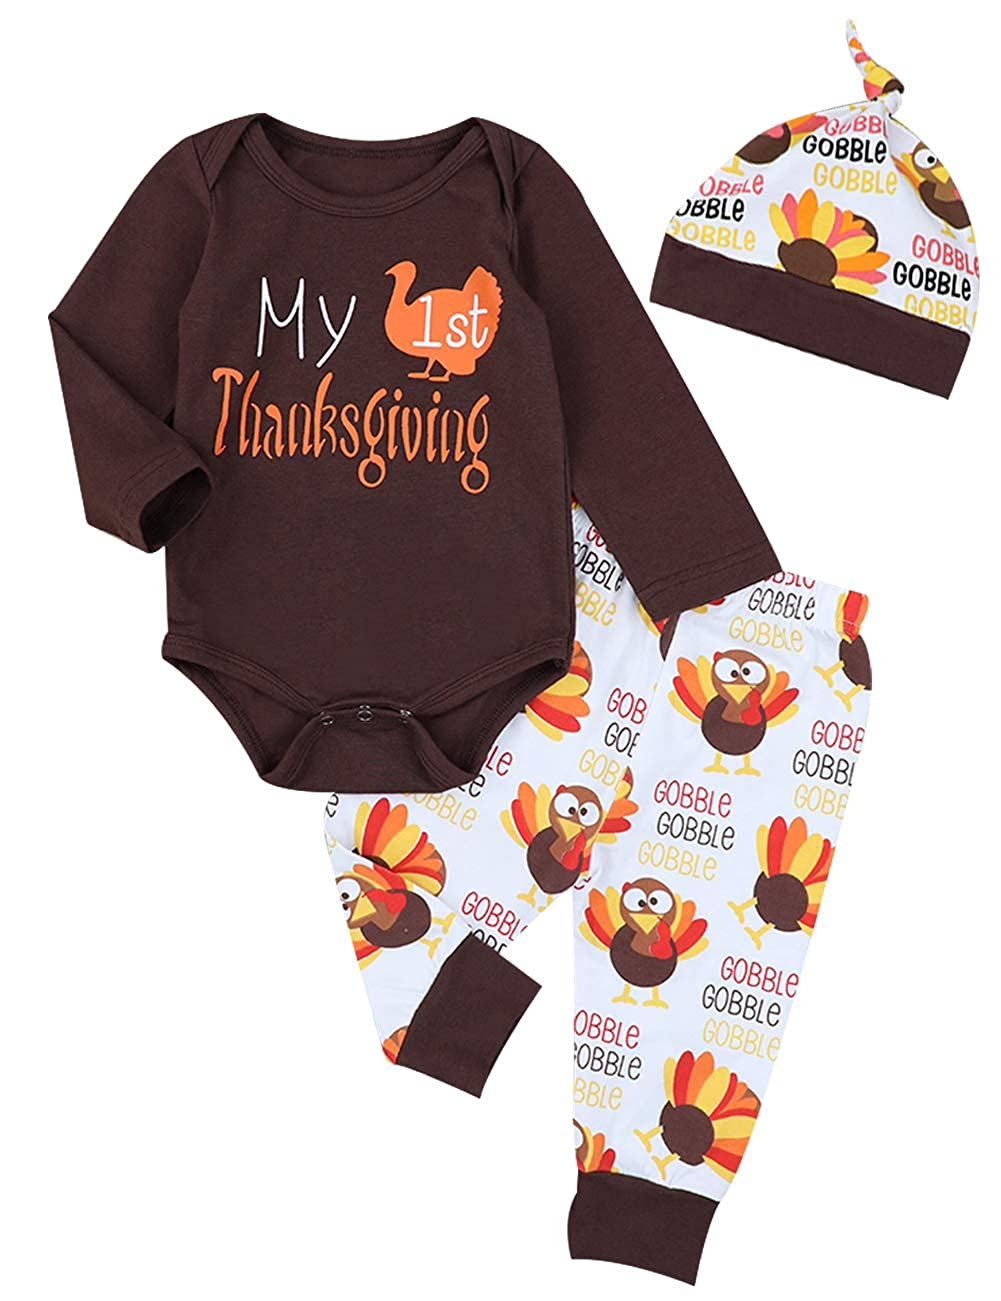 0856ebd77 Thanksgiving Outfits Newborn Boy Girl My First Thanksgiving Letter Print  Romper Turkey Print Pant with Hat Clothes Set